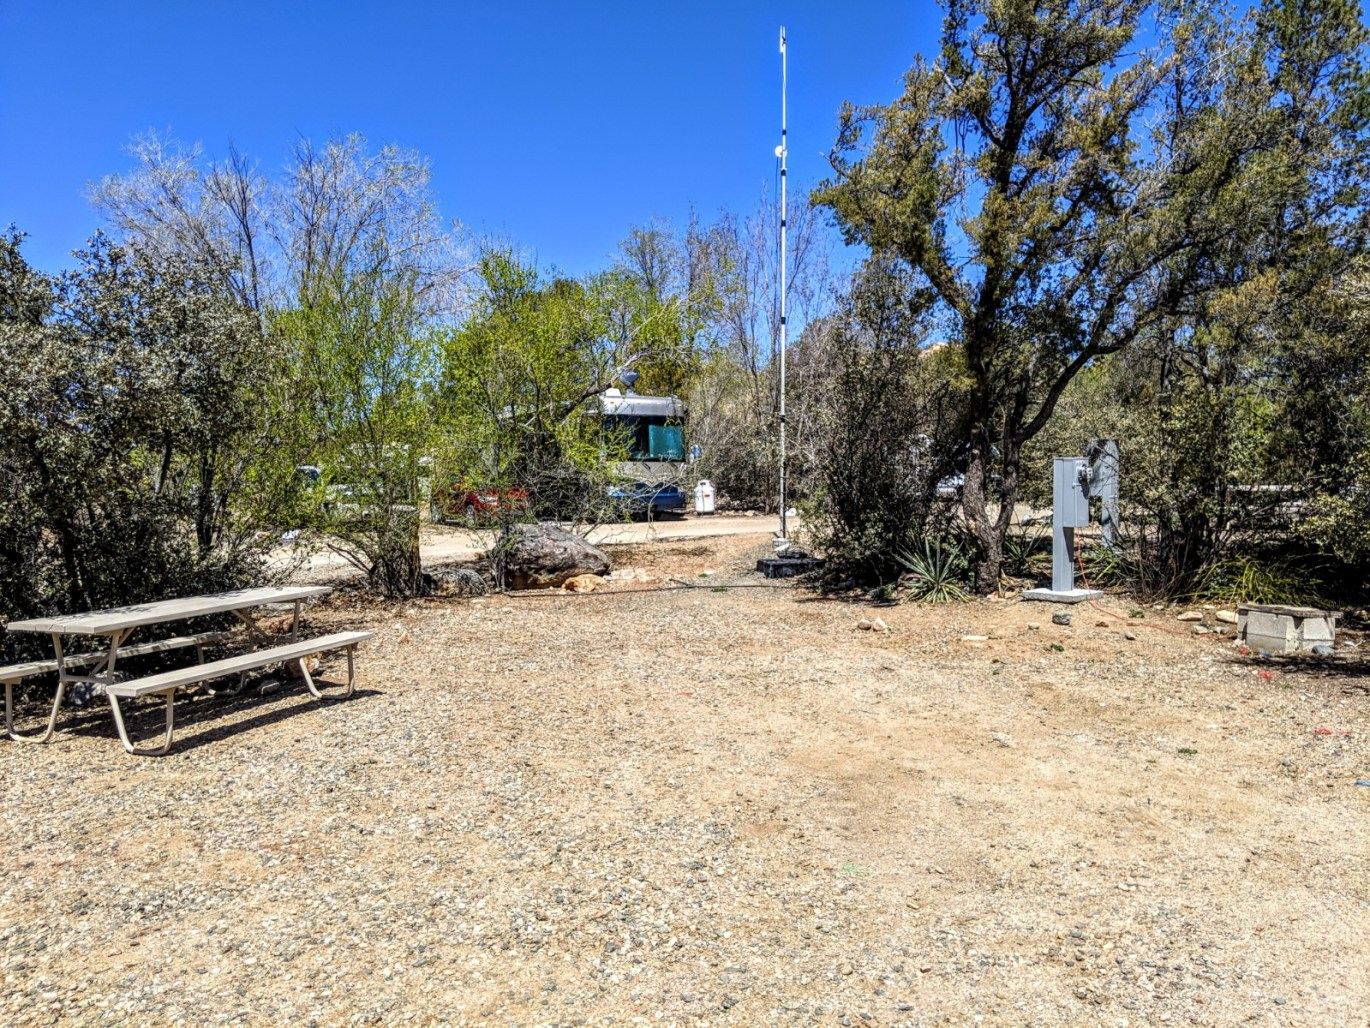 Campsite 98 at Point of Rocks RV Campground